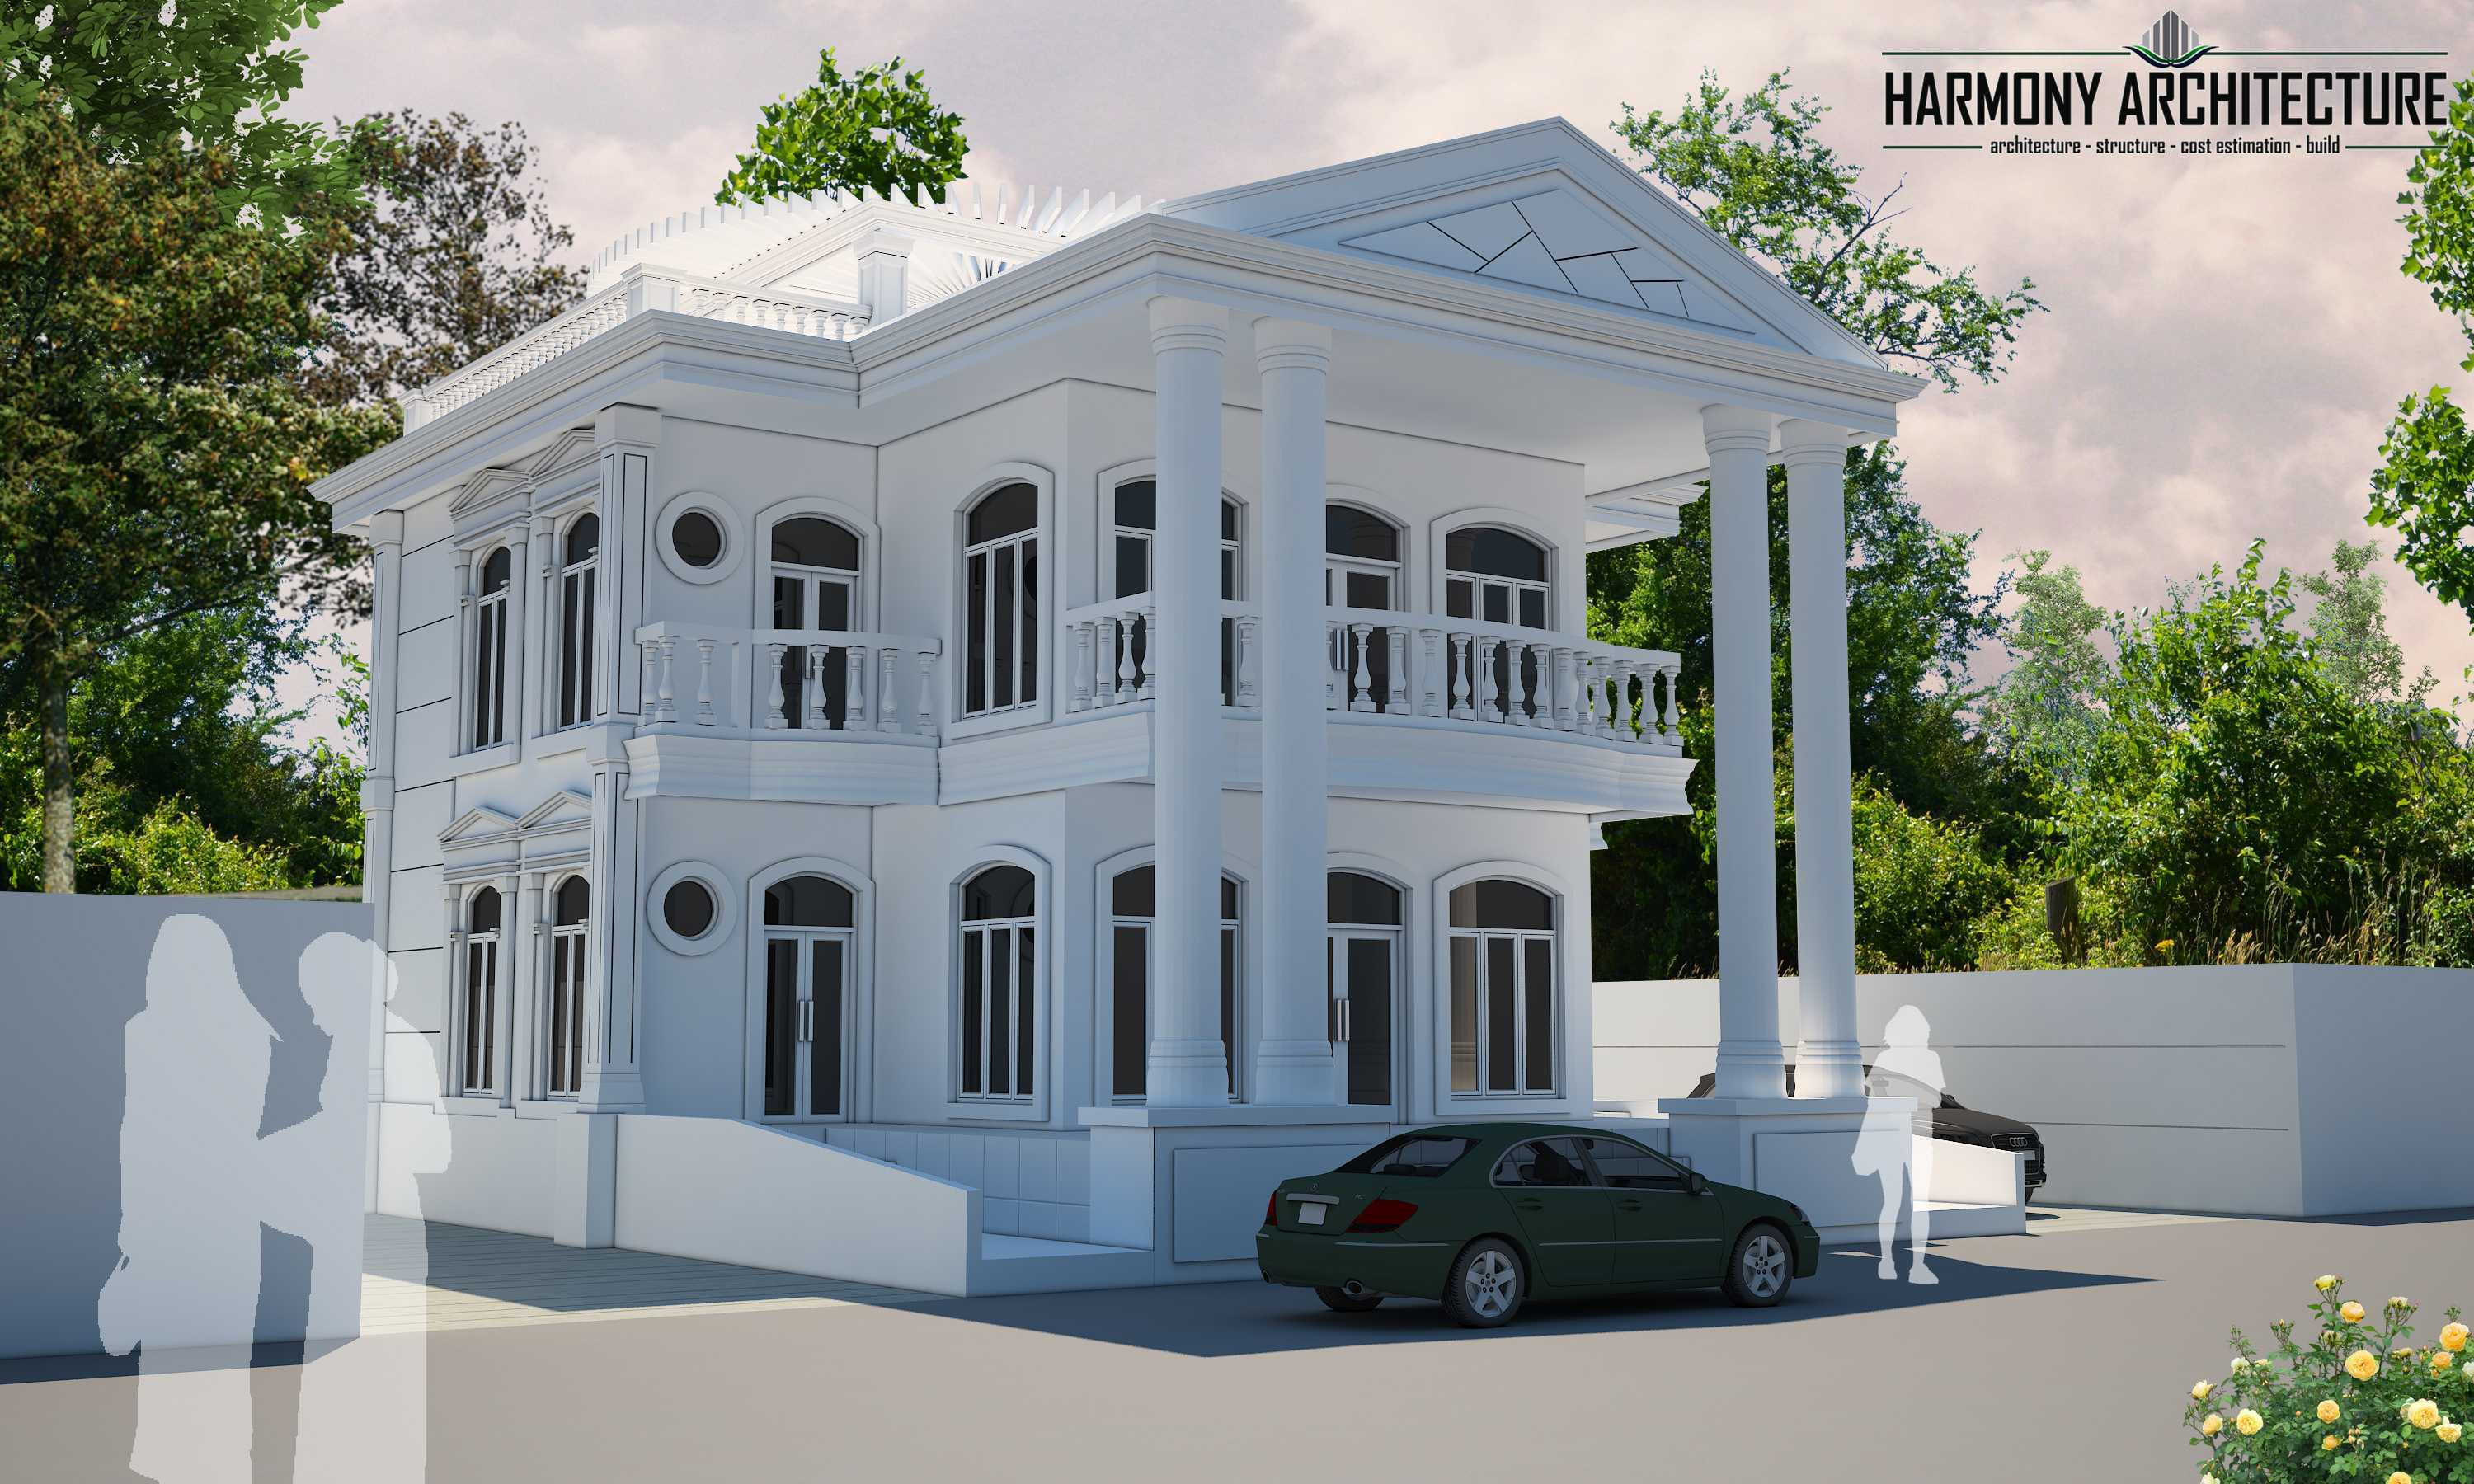 Harmony Architecture White House Of Timor Timor-Leste Timor-Leste Harmony-Architecture-White-House-Of-Timor Classic Perspektif 52516